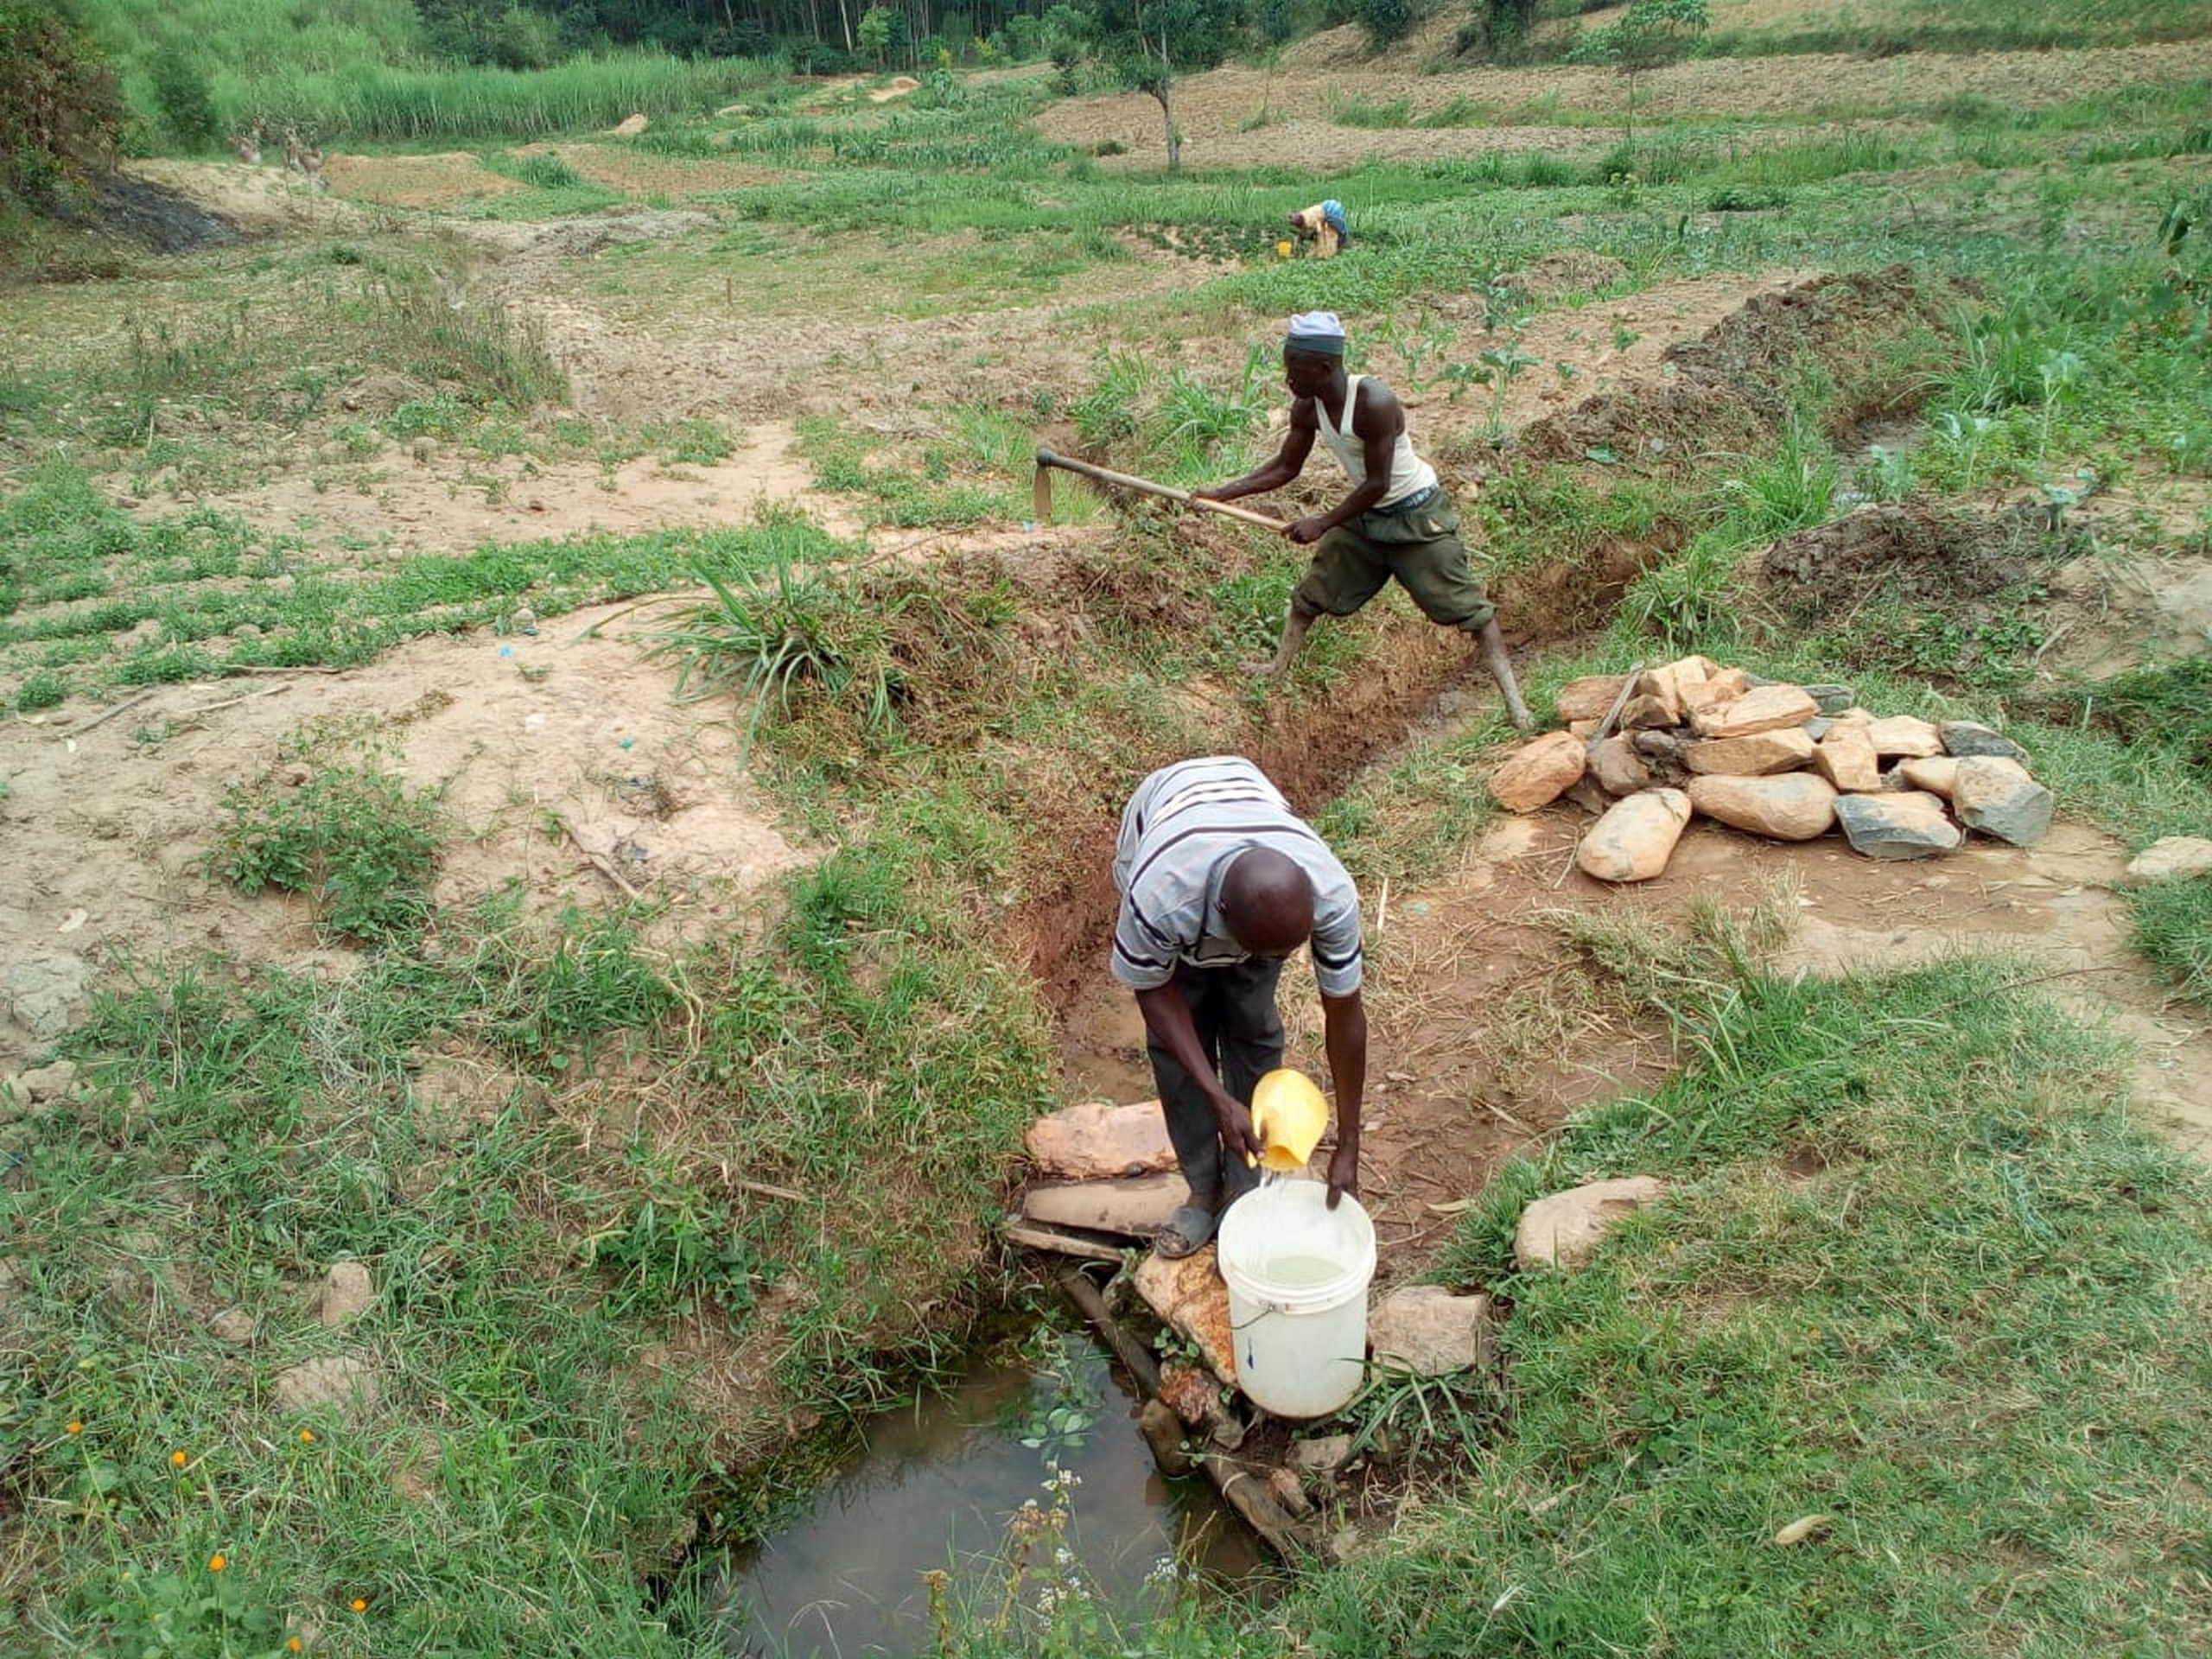 The Water Project : 5-kenya19123-fetching-water-as-the-man-behind-clears-drainage-channel-as-advised